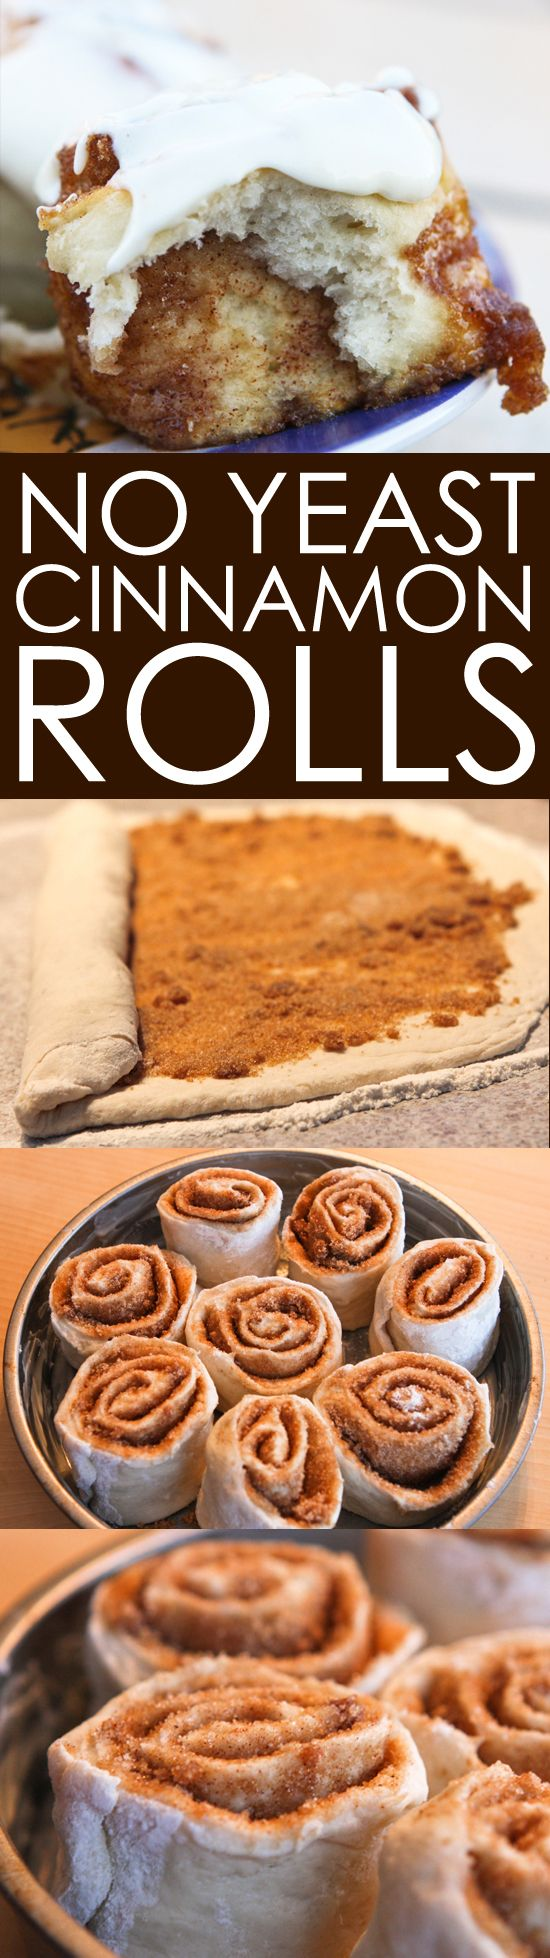 No Yeast Cinnamon Rolls | Ditch the yeast and make cinnamon rolls EASY!